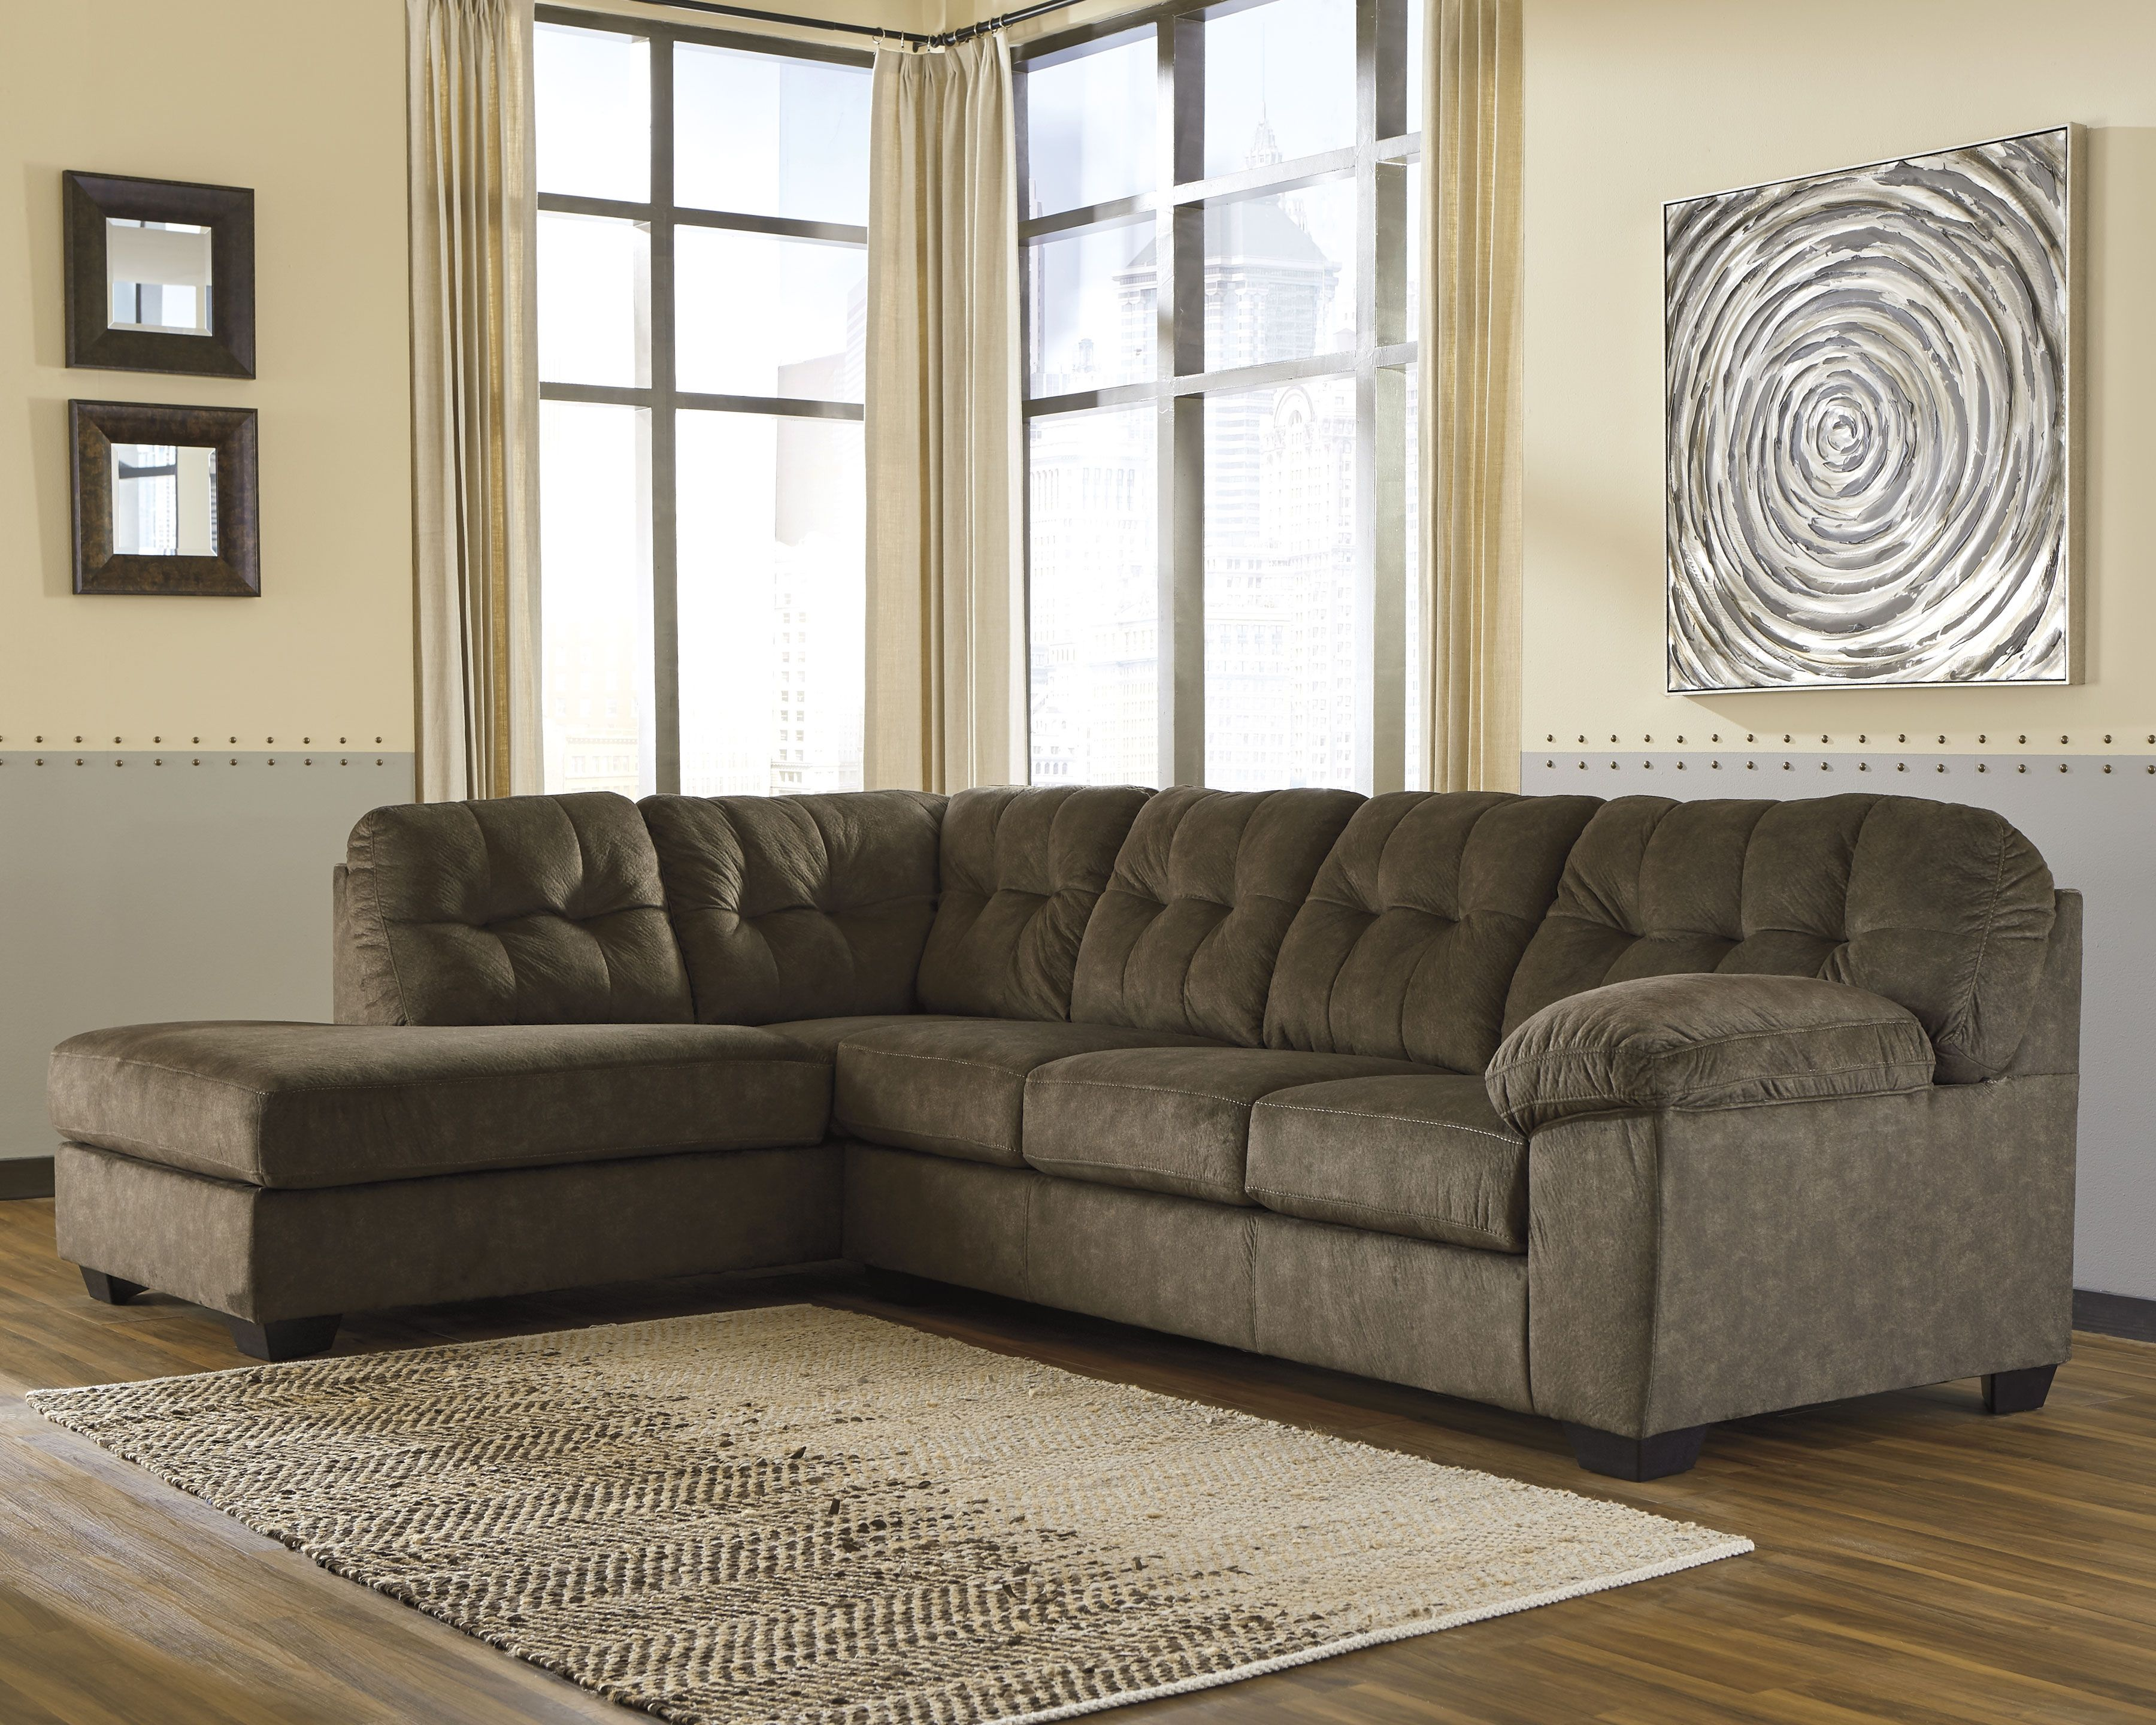 Fabulous Accrington 2 Piece Sectional Earth Products Sectional Pdpeps Interior Chair Design Pdpepsorg